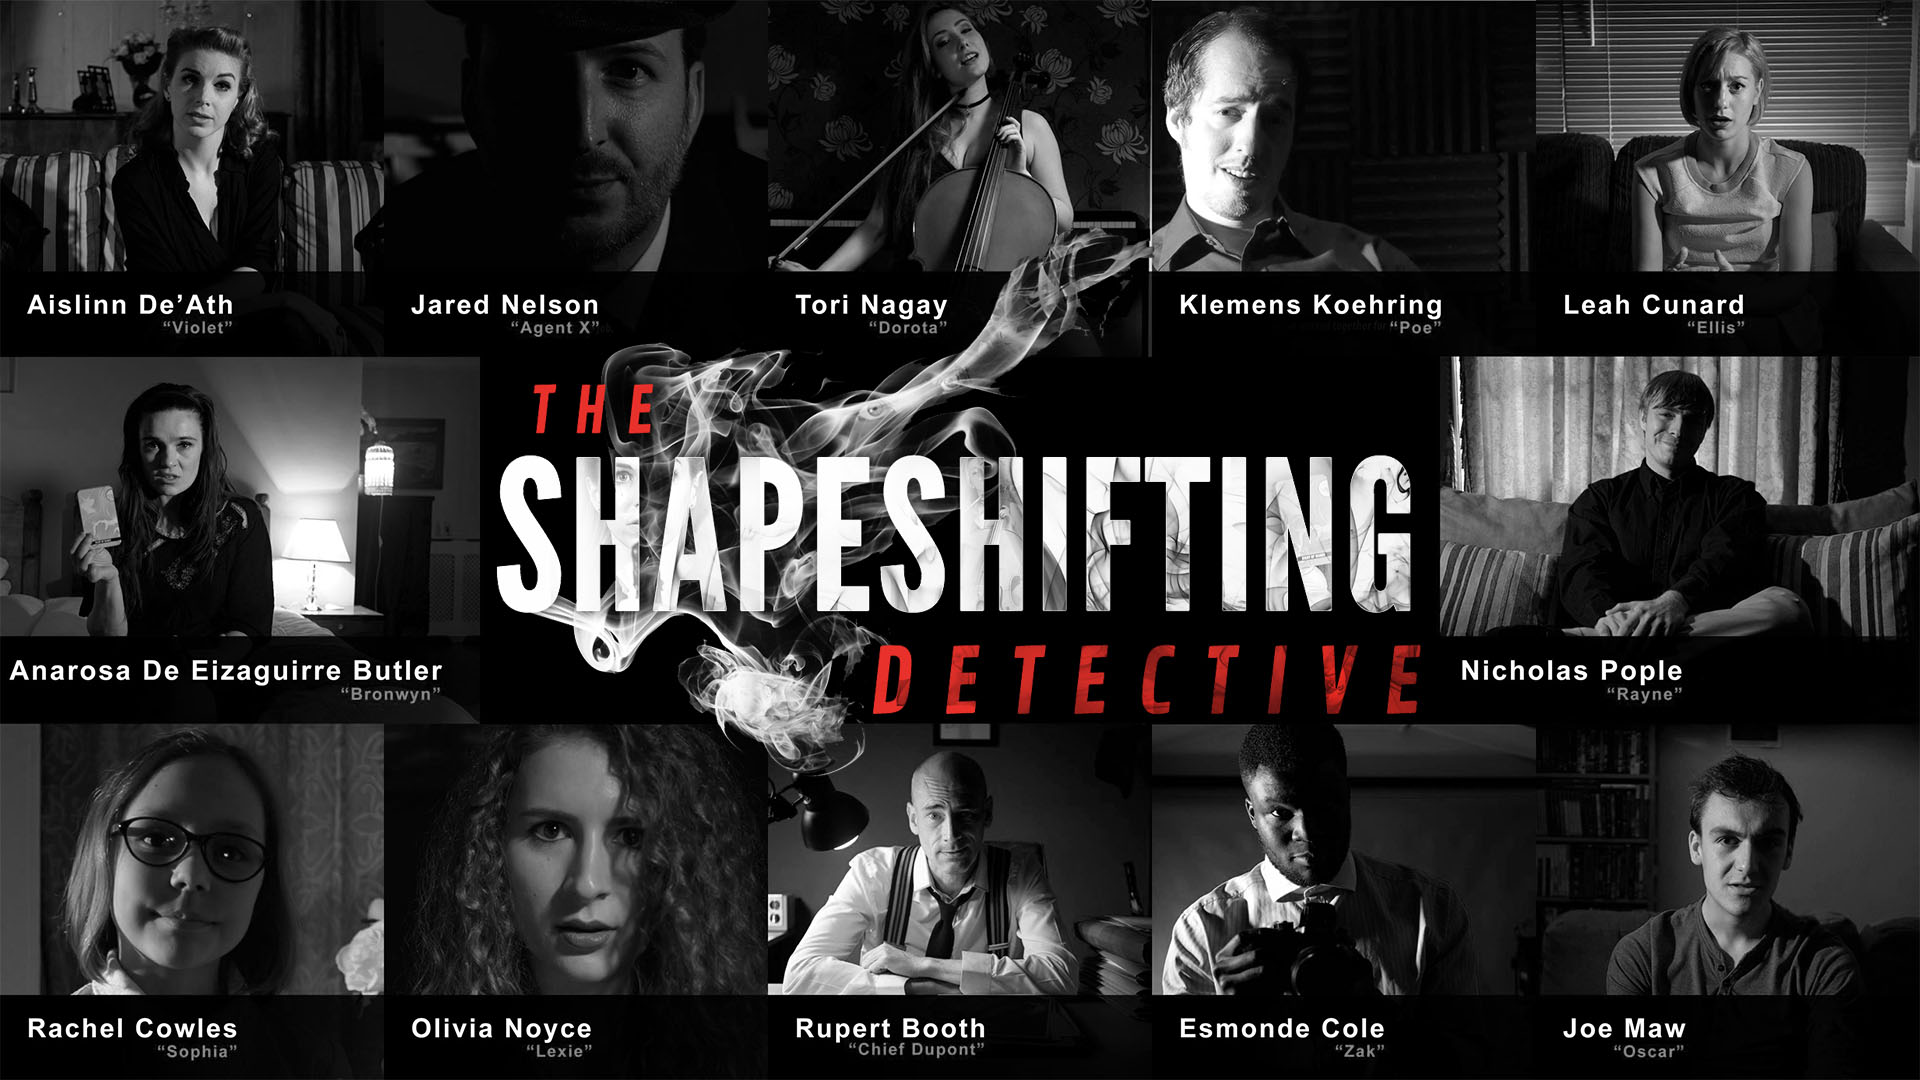 The Shapeshifting Detective (PS4) Review